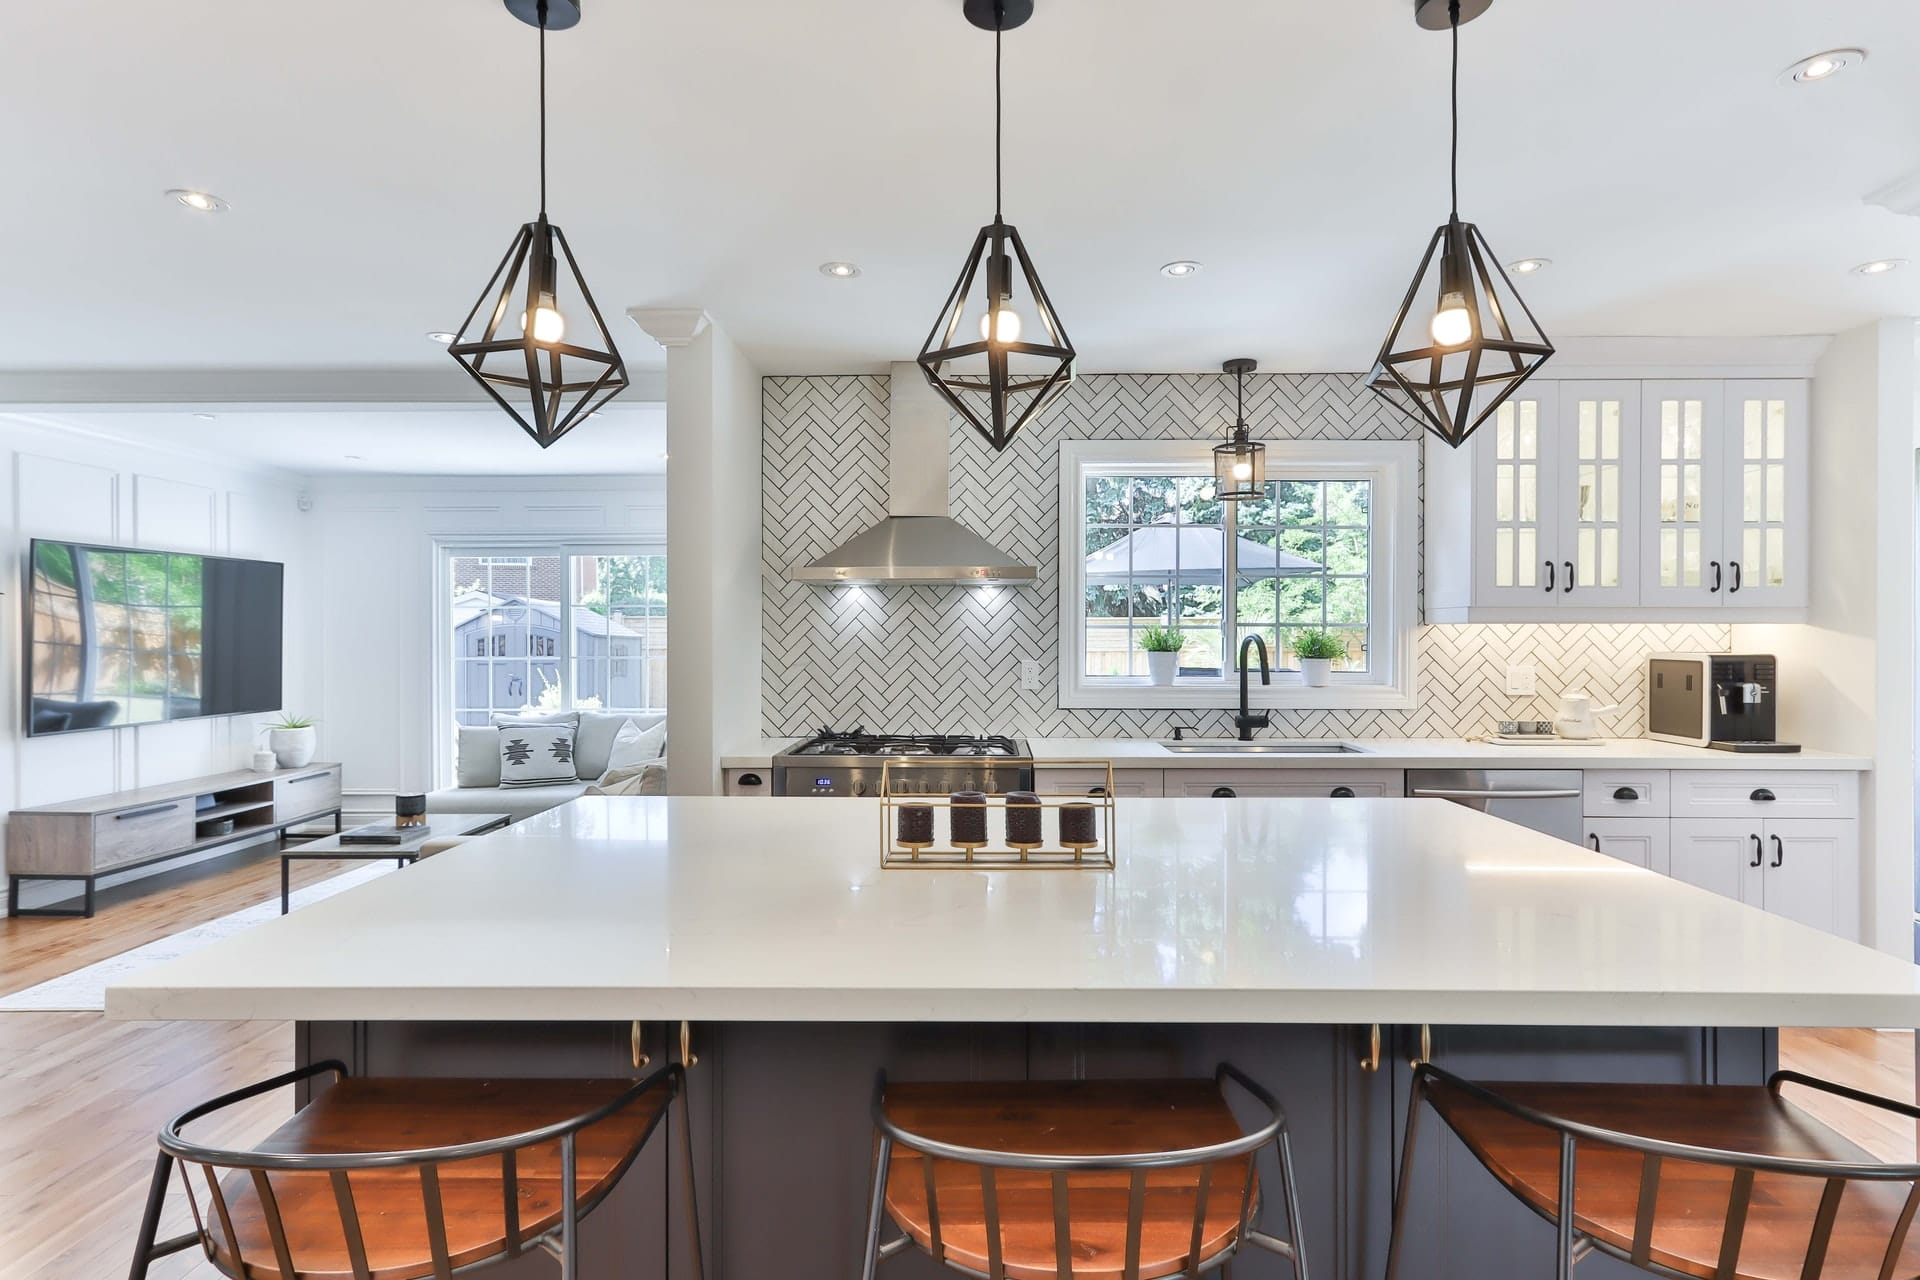 TMDC Group-Construction and Renovation - Photo of a model kitchen with herringbone tile backsplash and White granite counter top